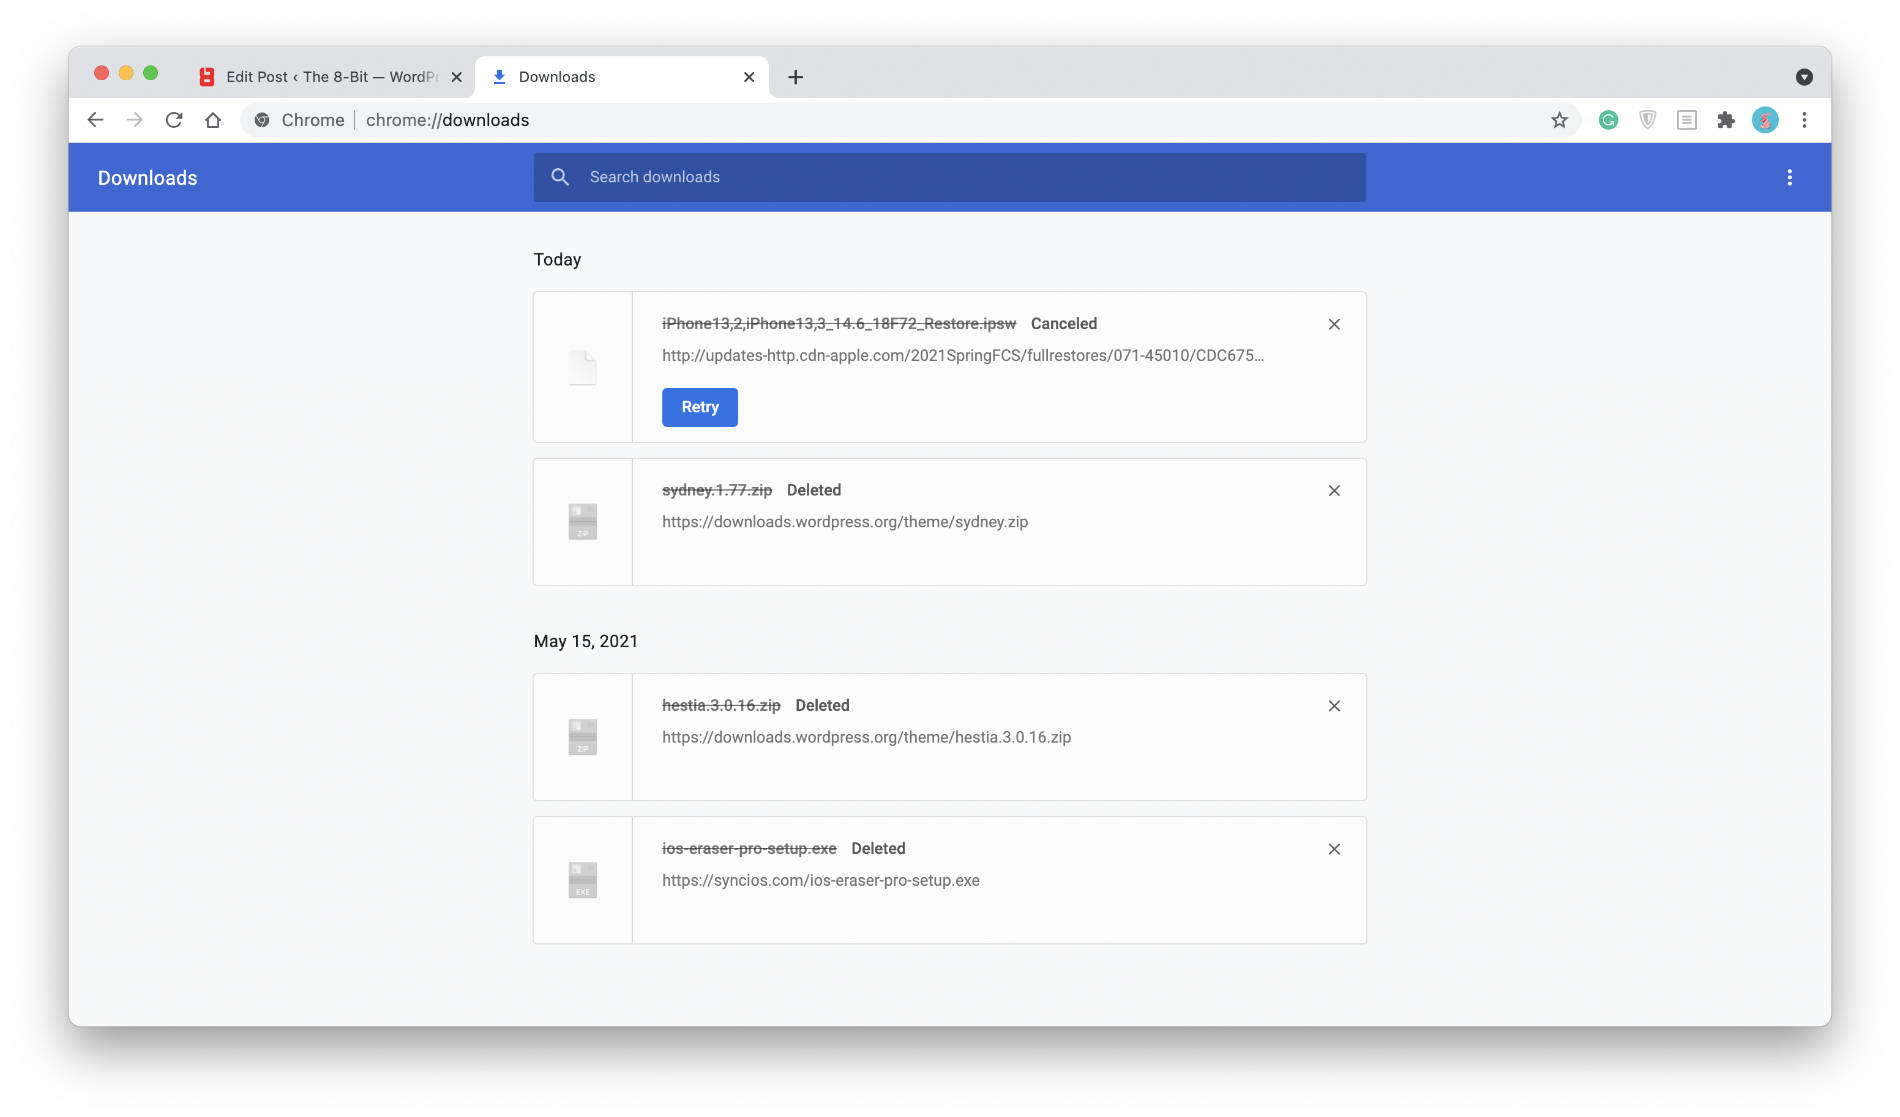 Chrome's Download Manager